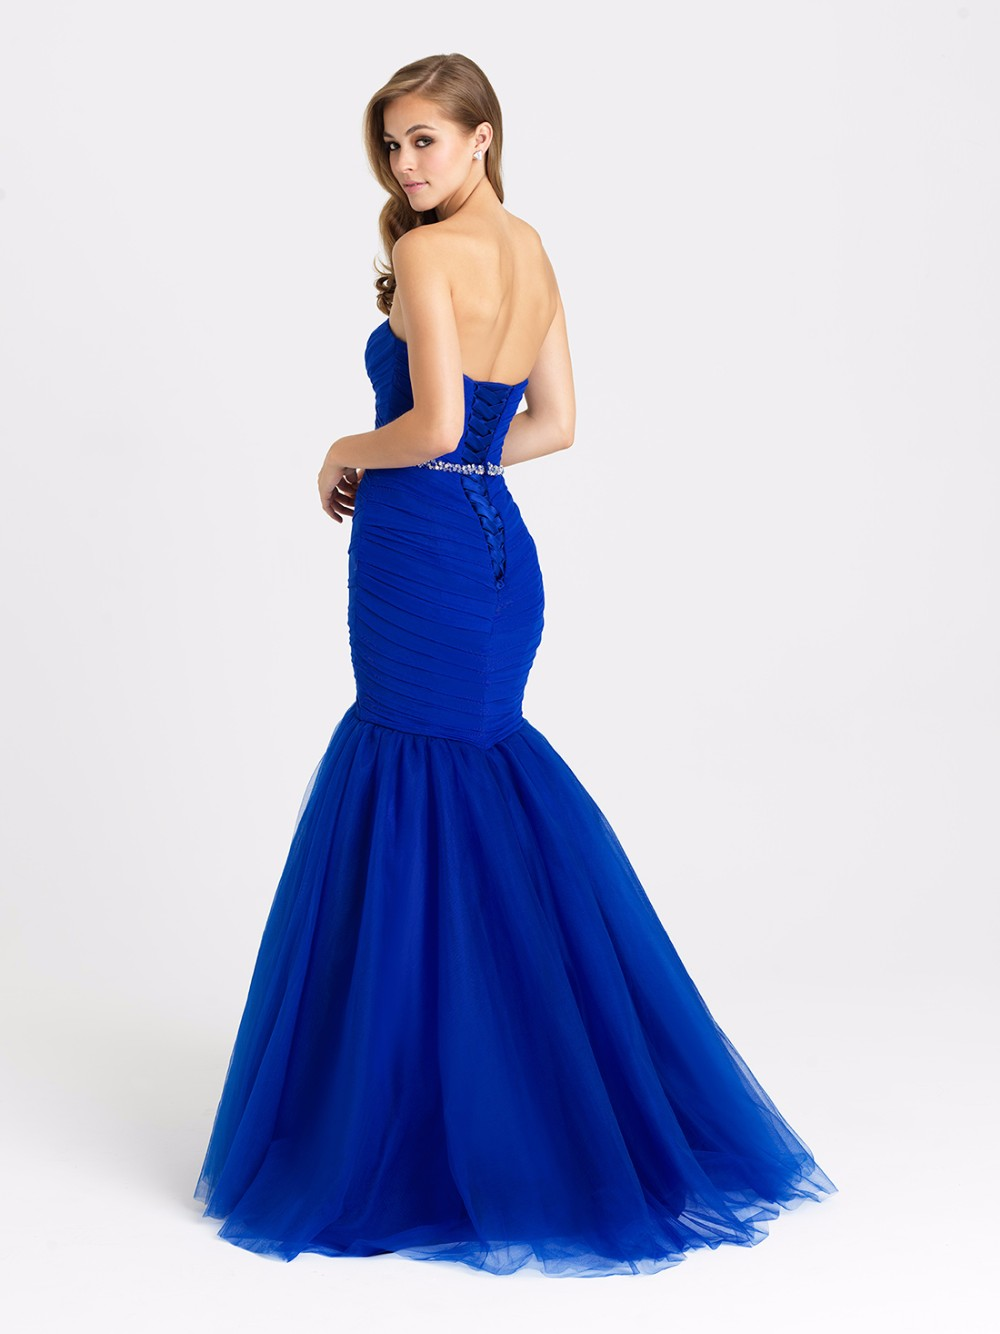 Wejanedress Sexy Wedding Guest Dress Off The Shoulder Sleeveless Royal Blue Mermaid Bridesmaid Dresses For Formal Party Gown In From